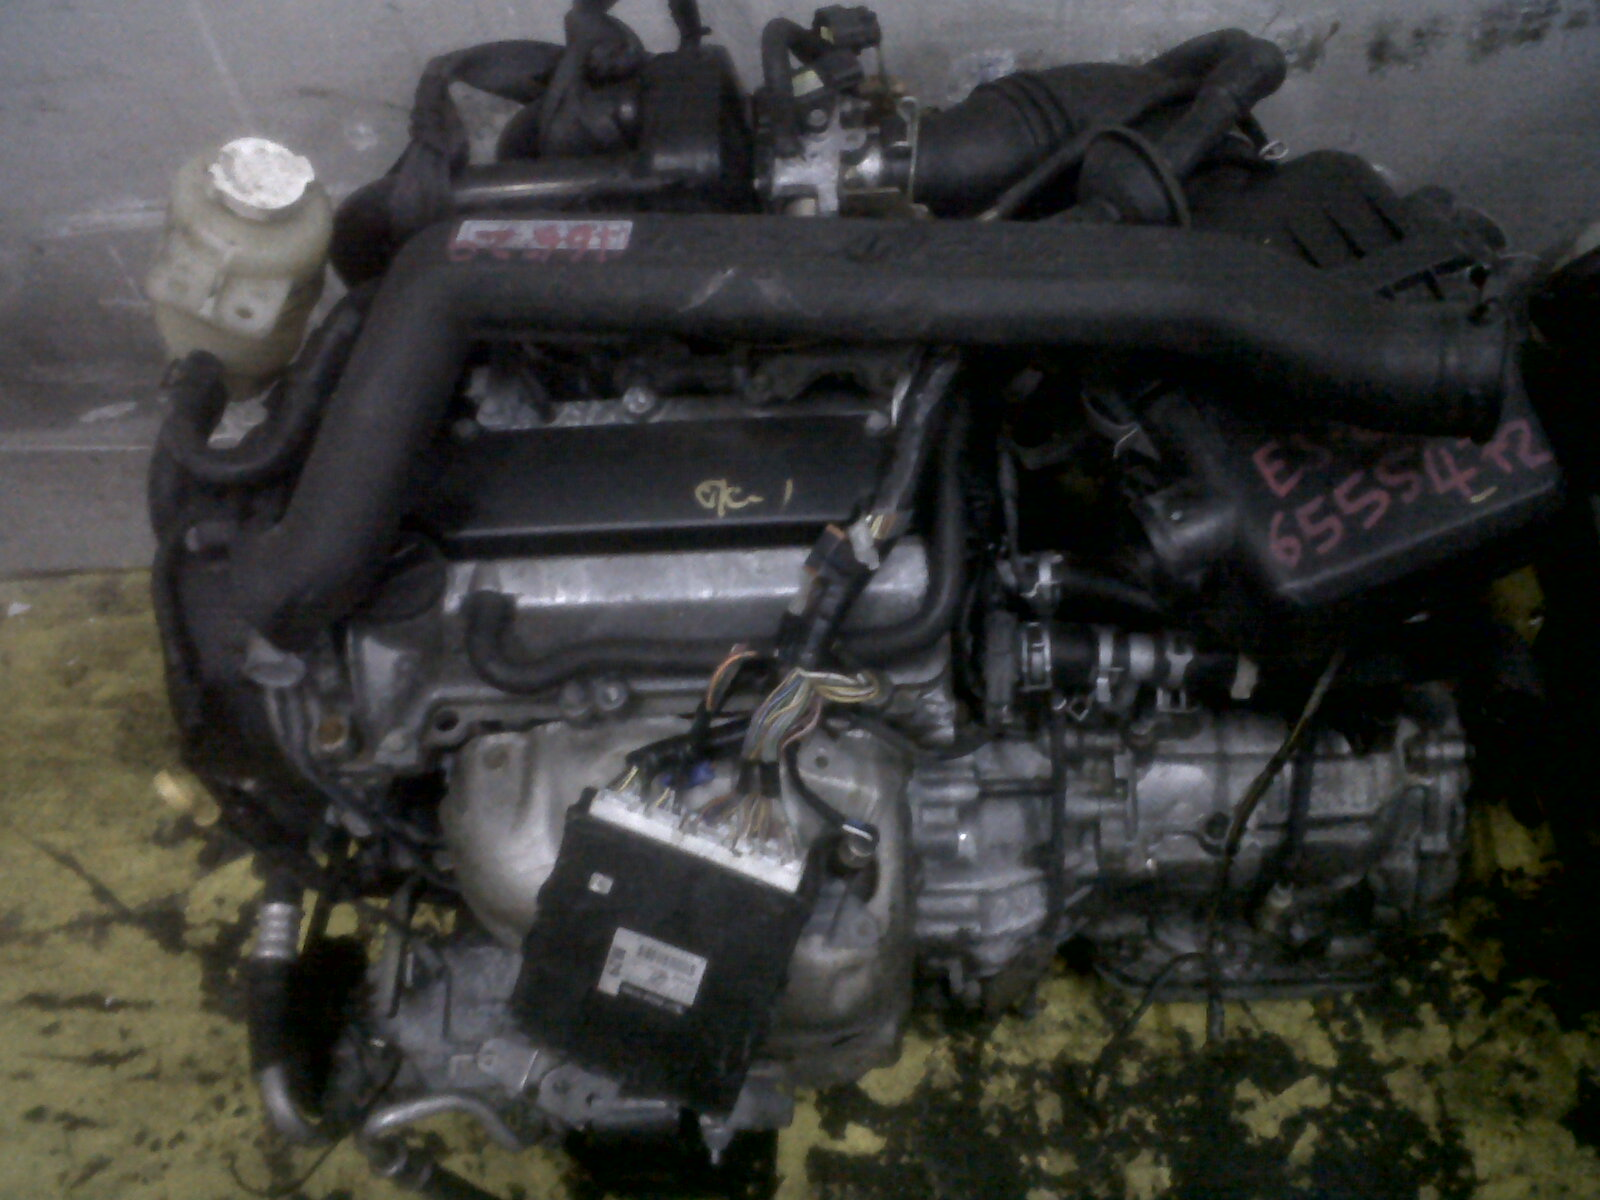 wiring kelisa wiring image wiring diagram yik autoparts performance kenari kelisa 1000cc engine gear box on wiring kelisa